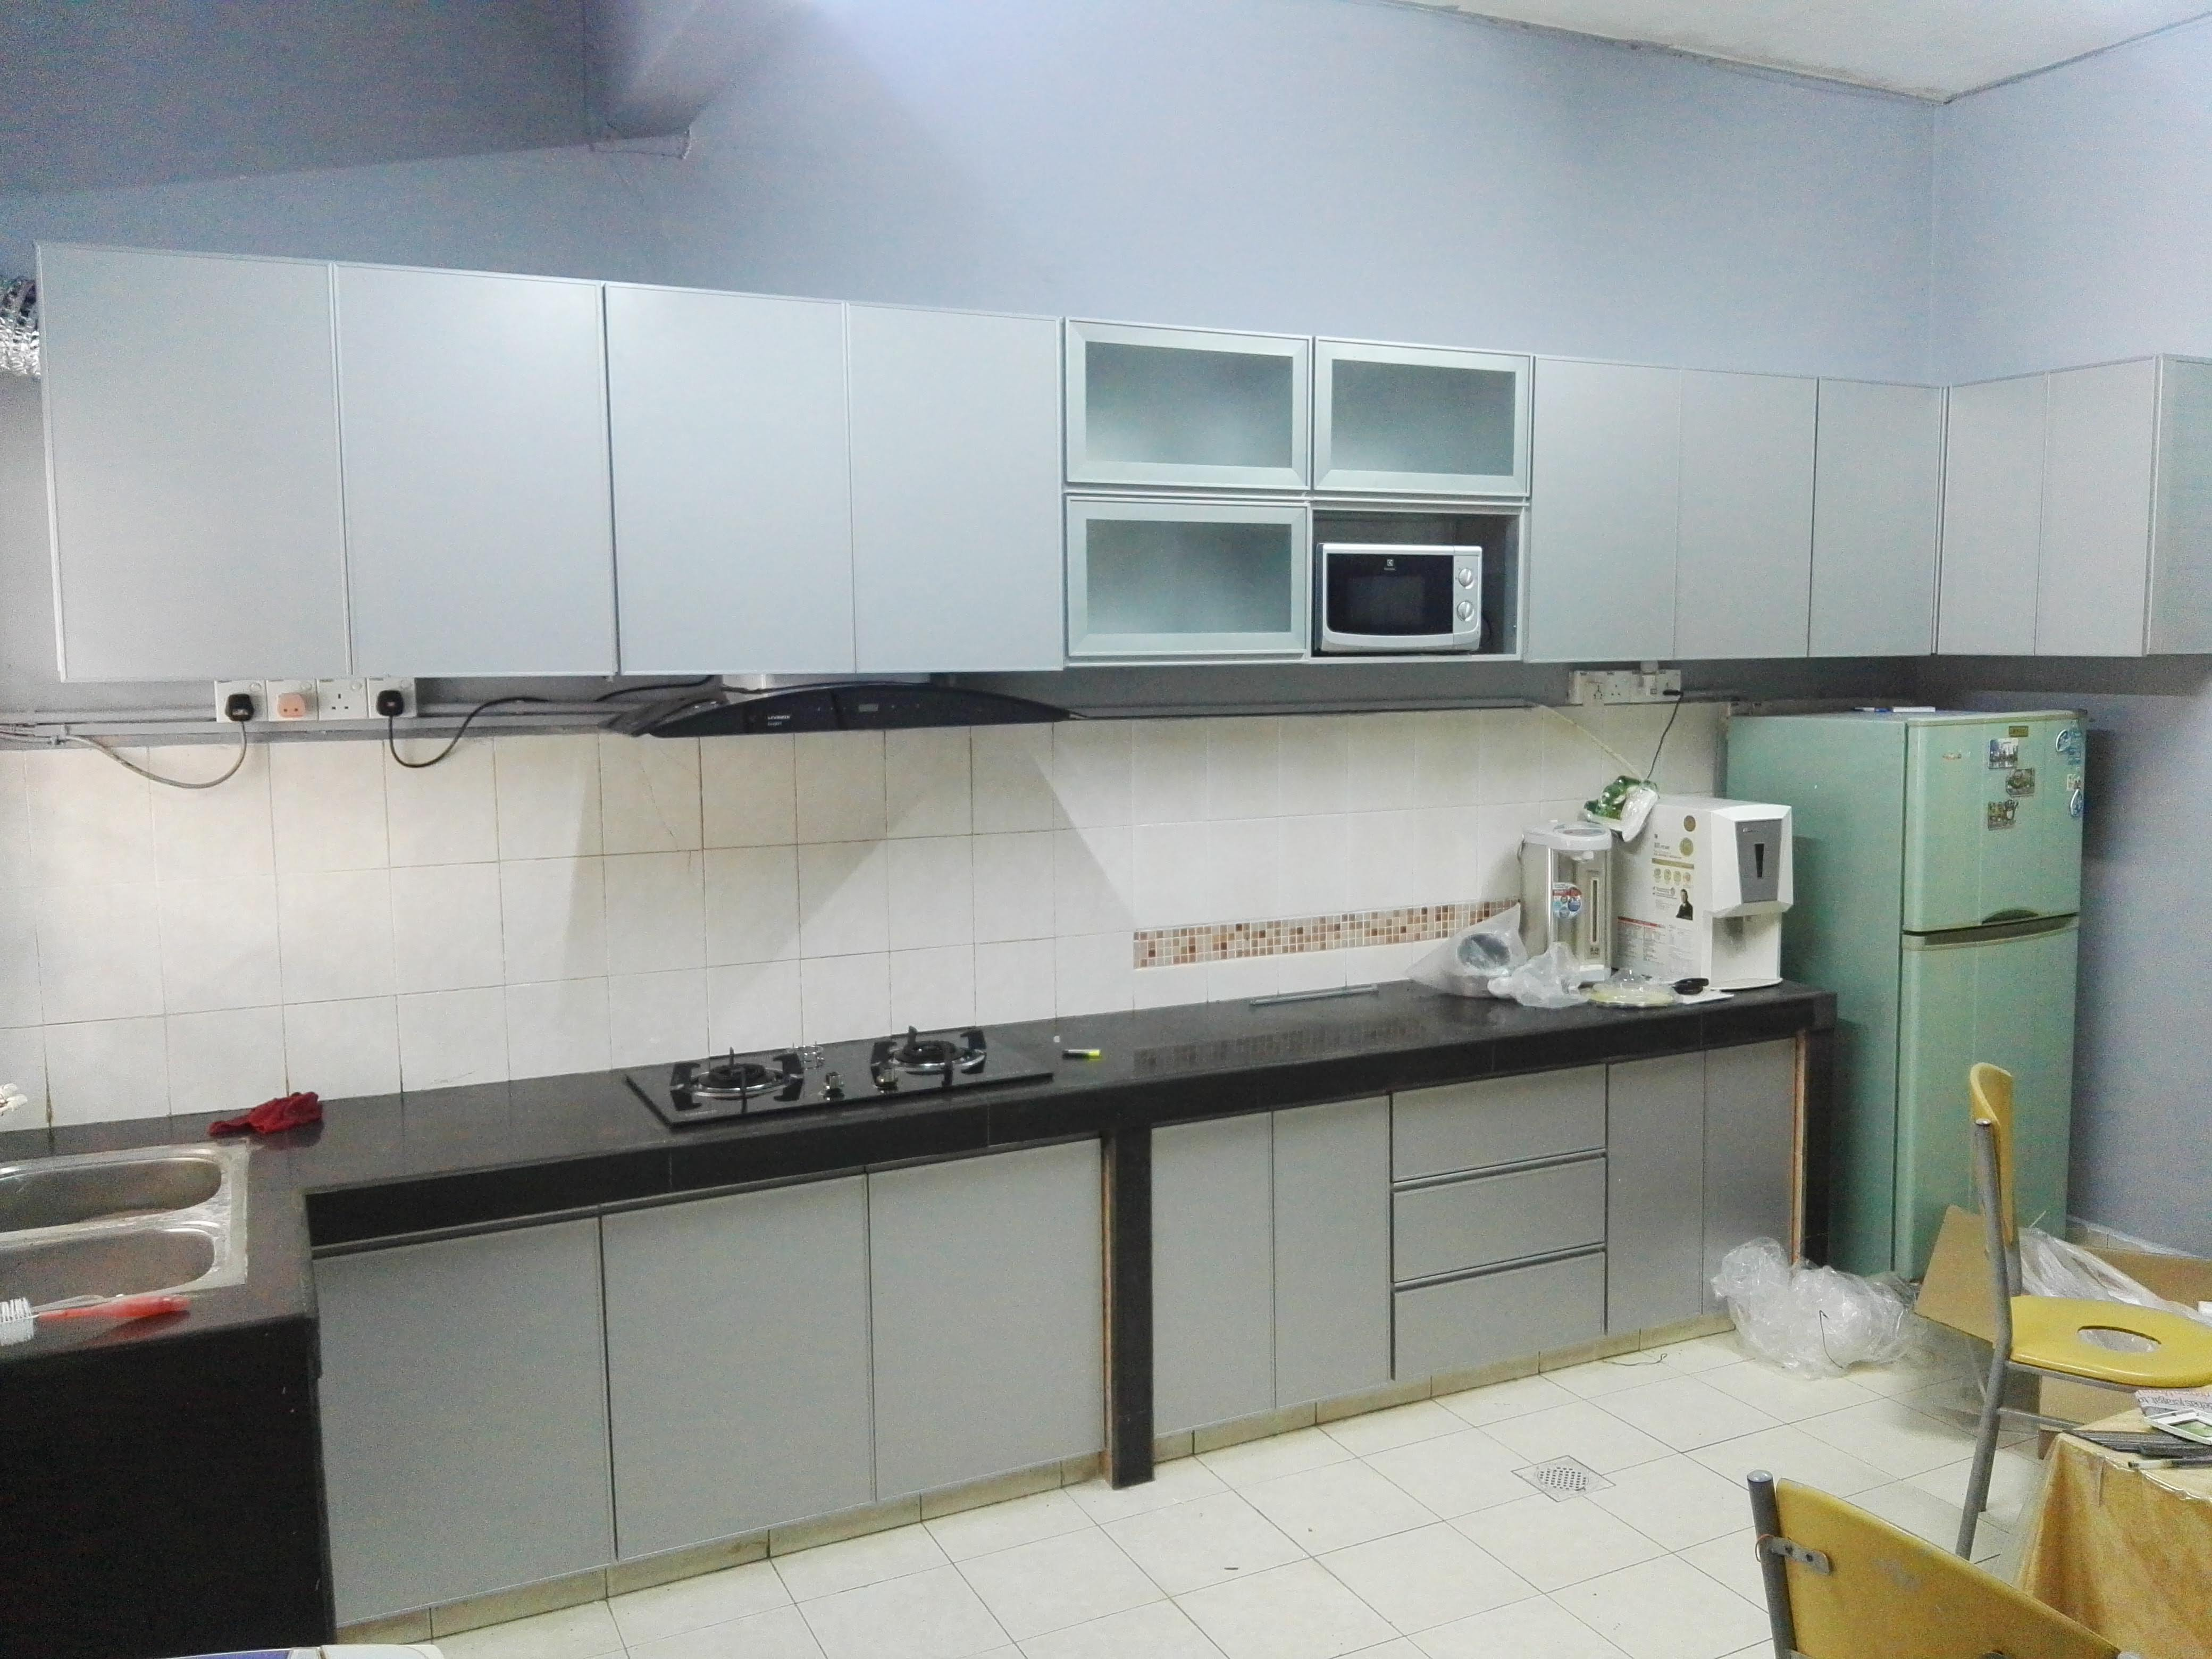 Kitchen Cabinet White And Silver Autogate Supplier Anyu Cnc Sdn Bhd